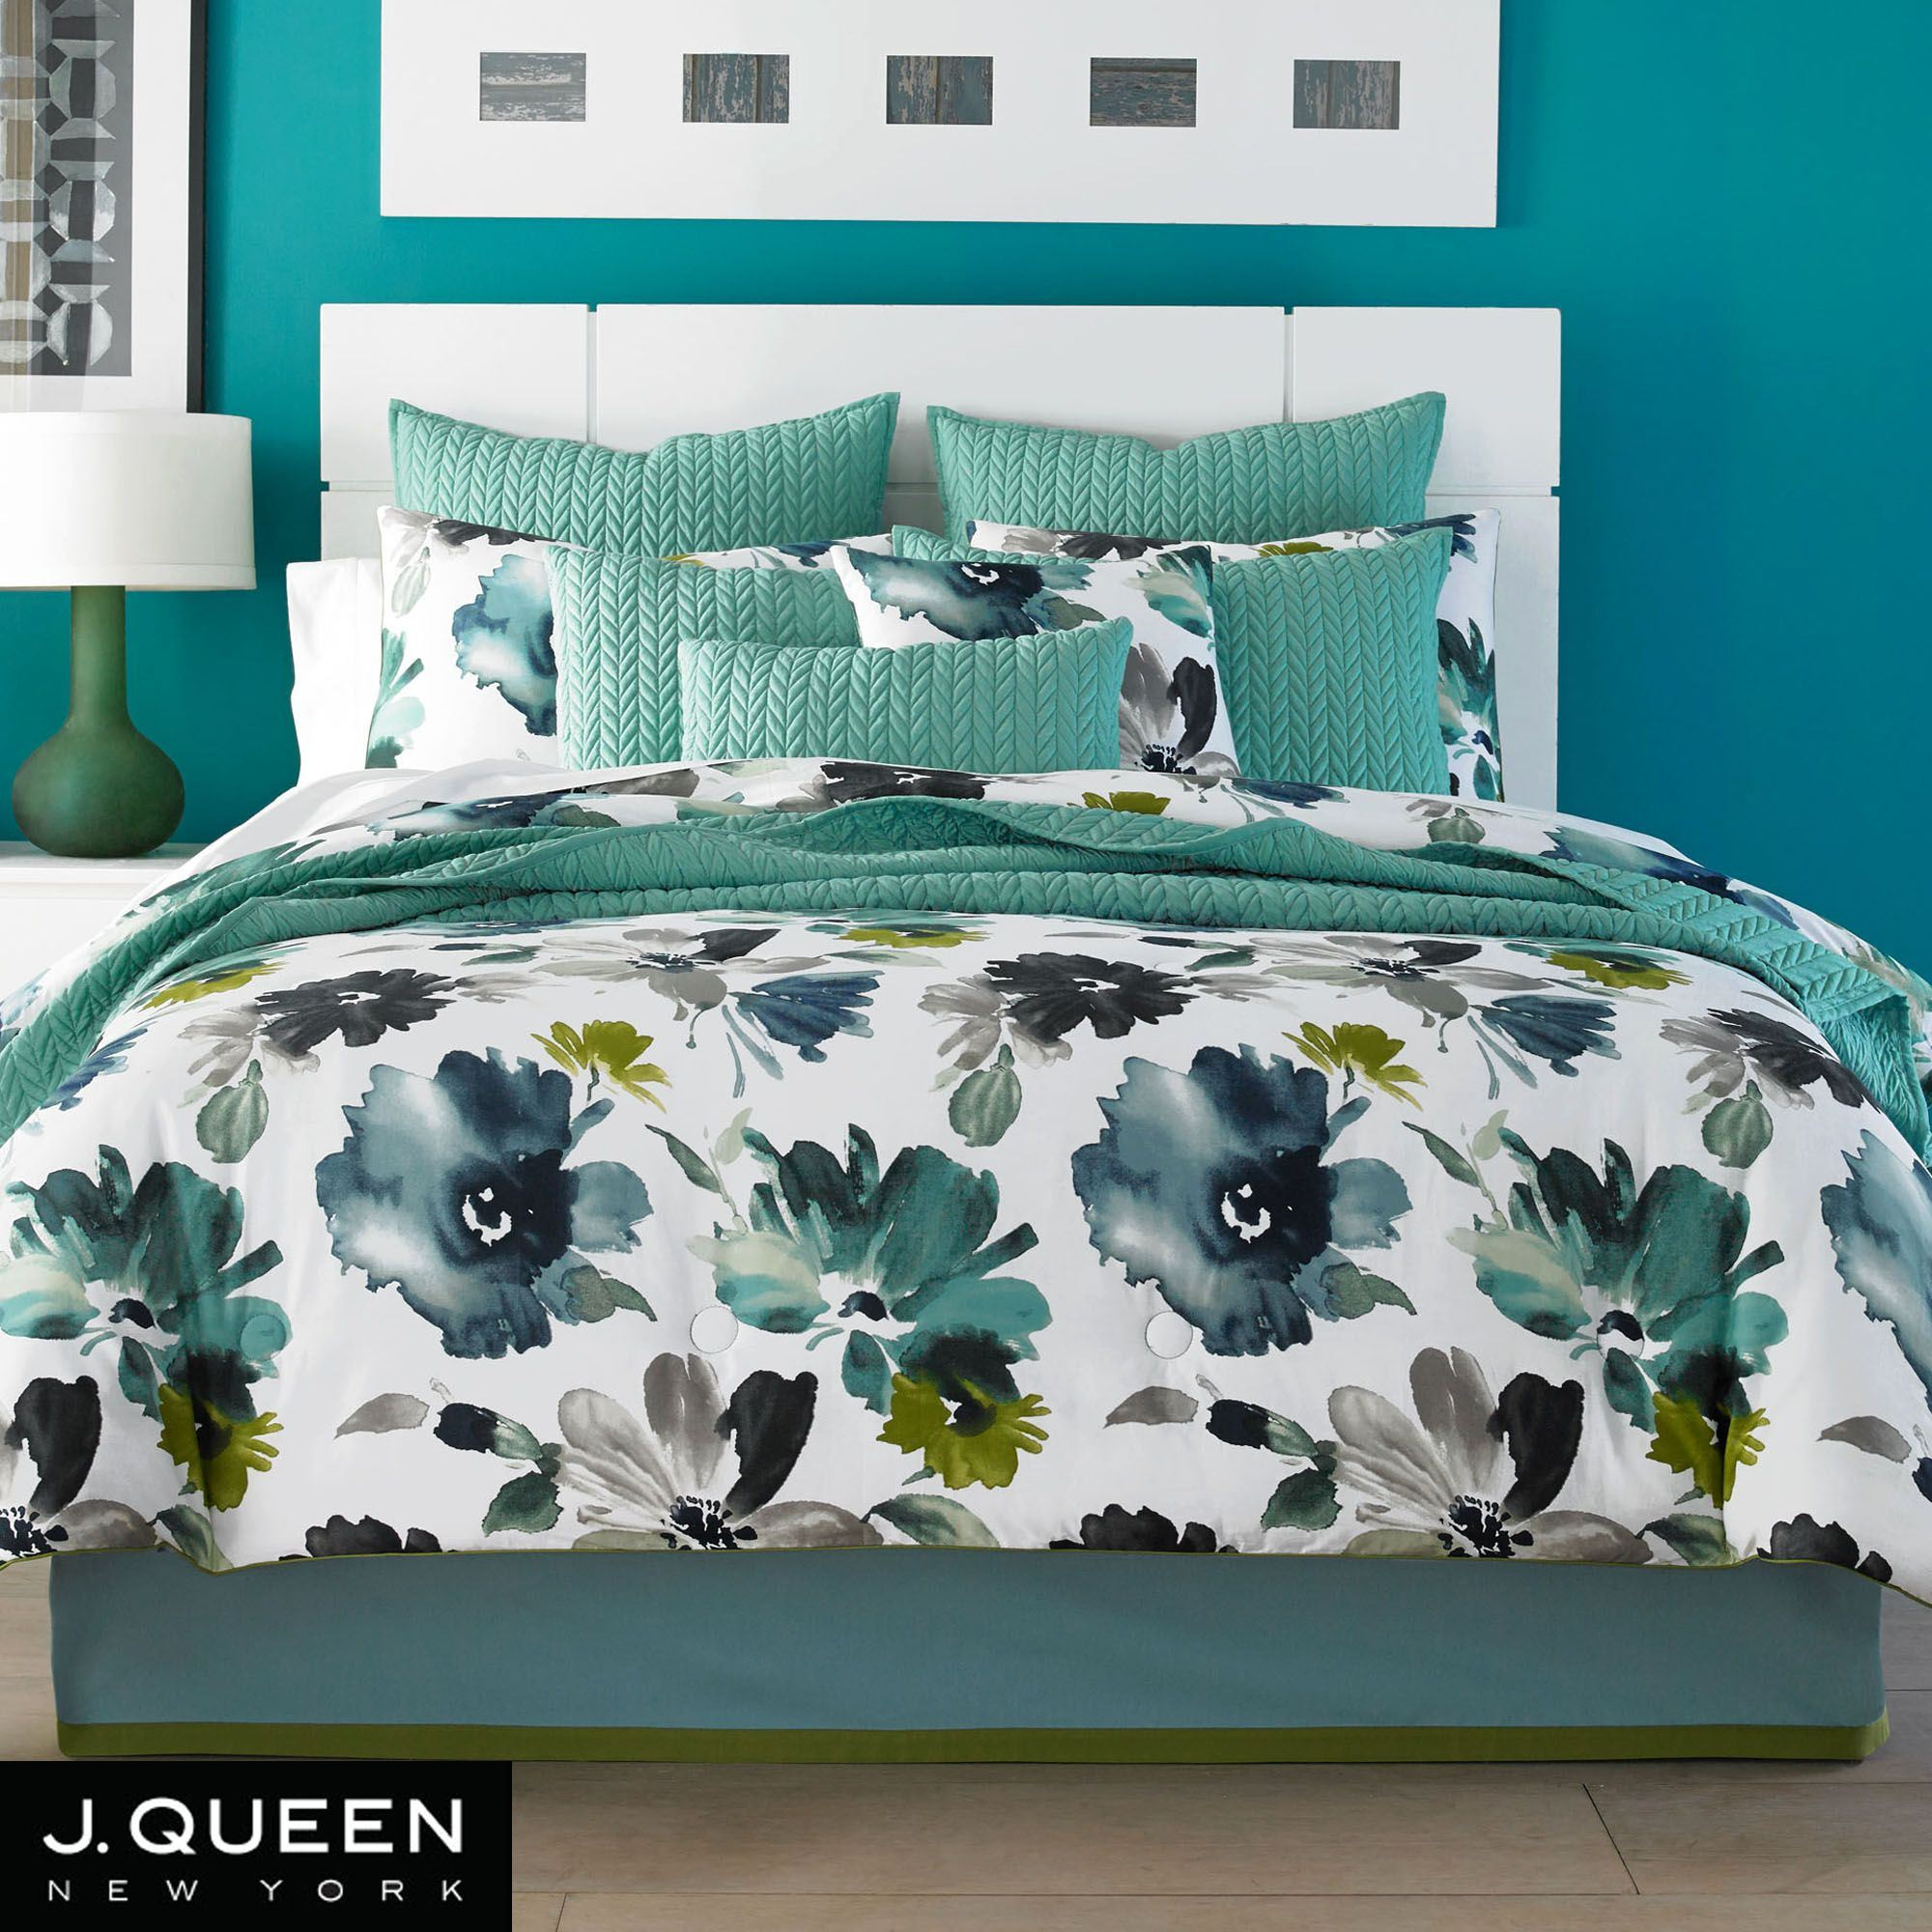 for coverlet covers bedroom king bed sets queen quilt quilts target kohls comforters size comforter qu cover california duvet